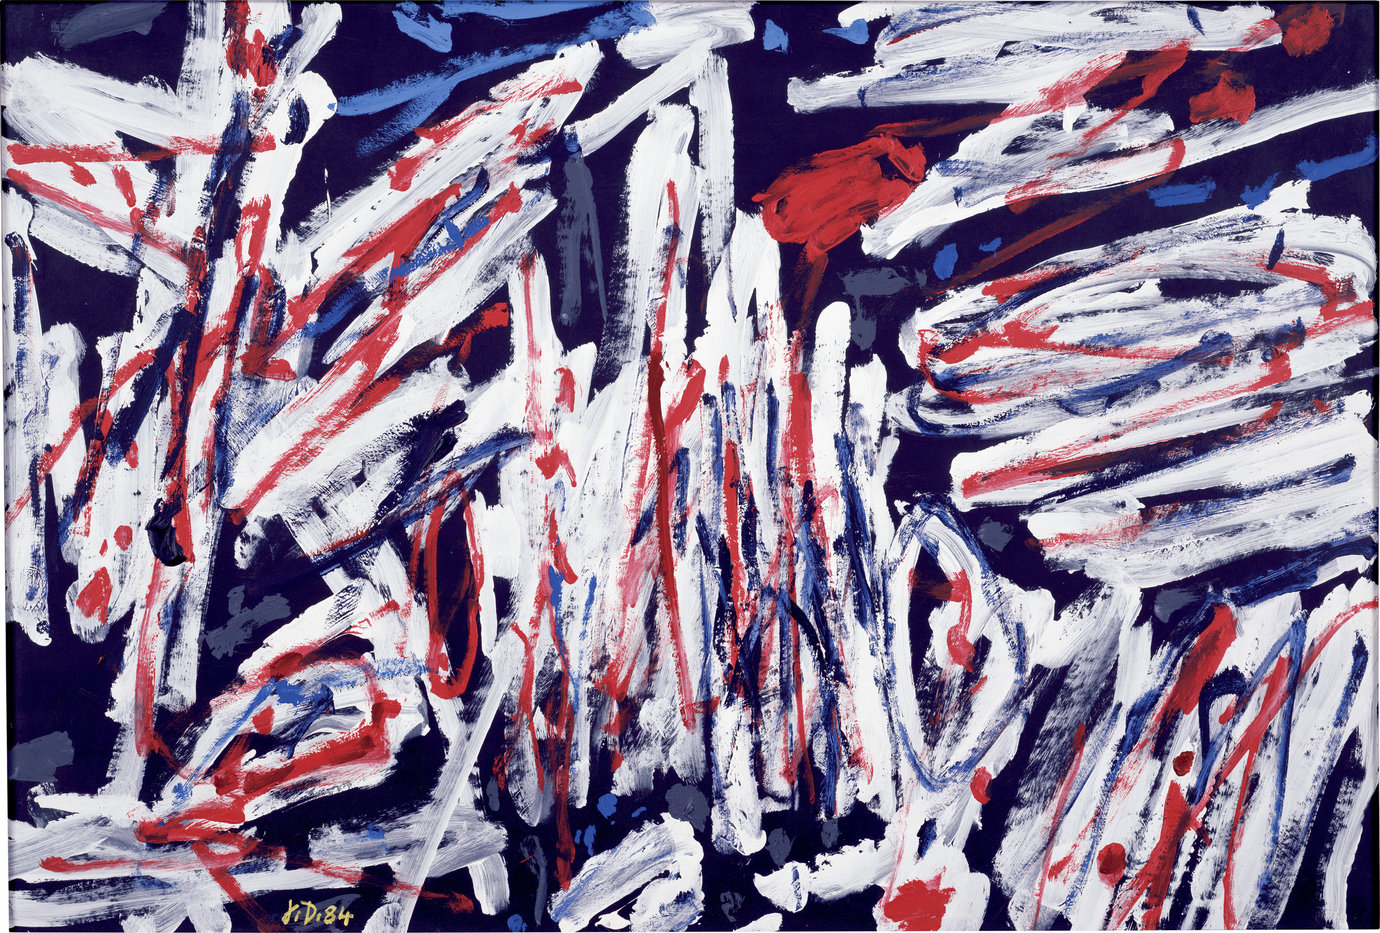 ", August 15, 1984. acrylic on canvas-backed paper, 26-1/2"" x 39-1/2"" (67.3 cm x 100.3 cm)."